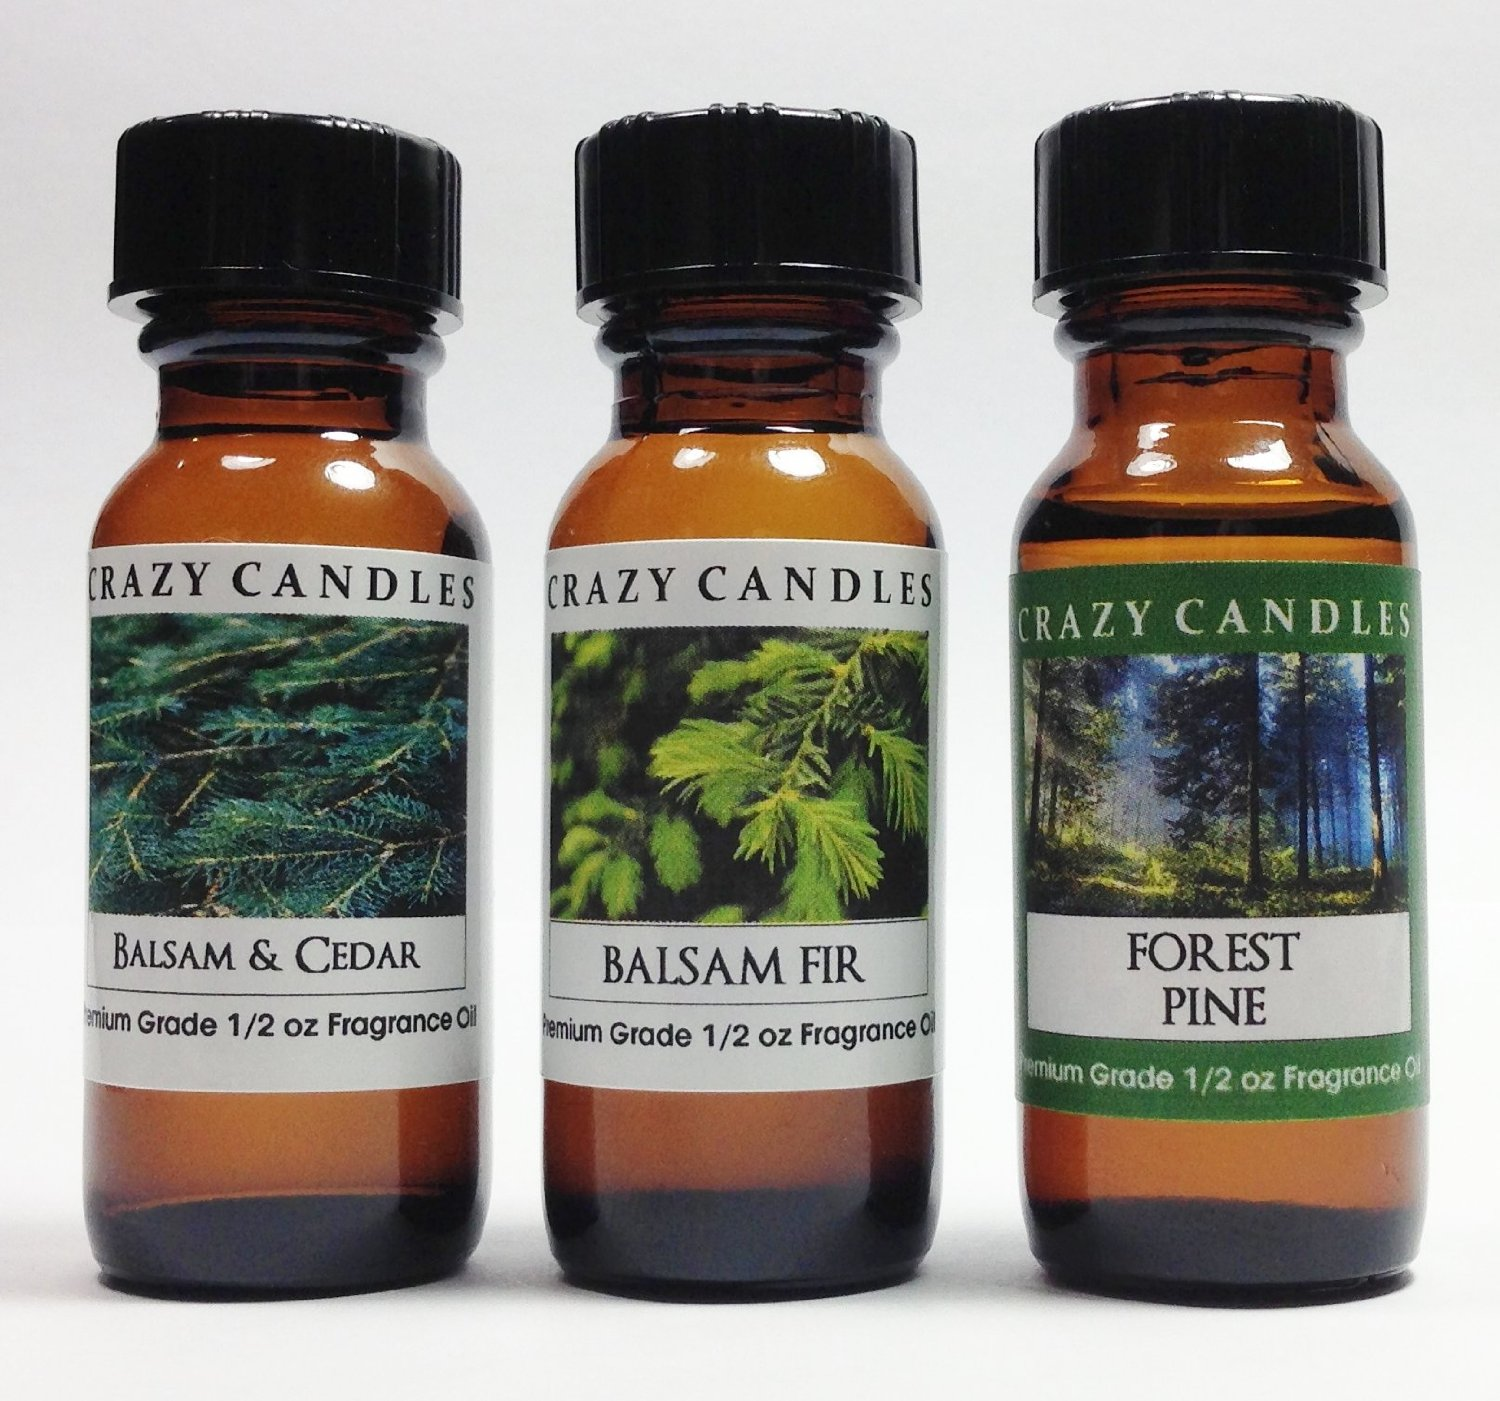 3 Bottles Set 1 Balsam & Cedar, 1 Balsam Fir, 1 Forest Pine 1/2 Fl Oz Each (15ml) Premium Grade Scented Fragrance Oils By Crazy Candles